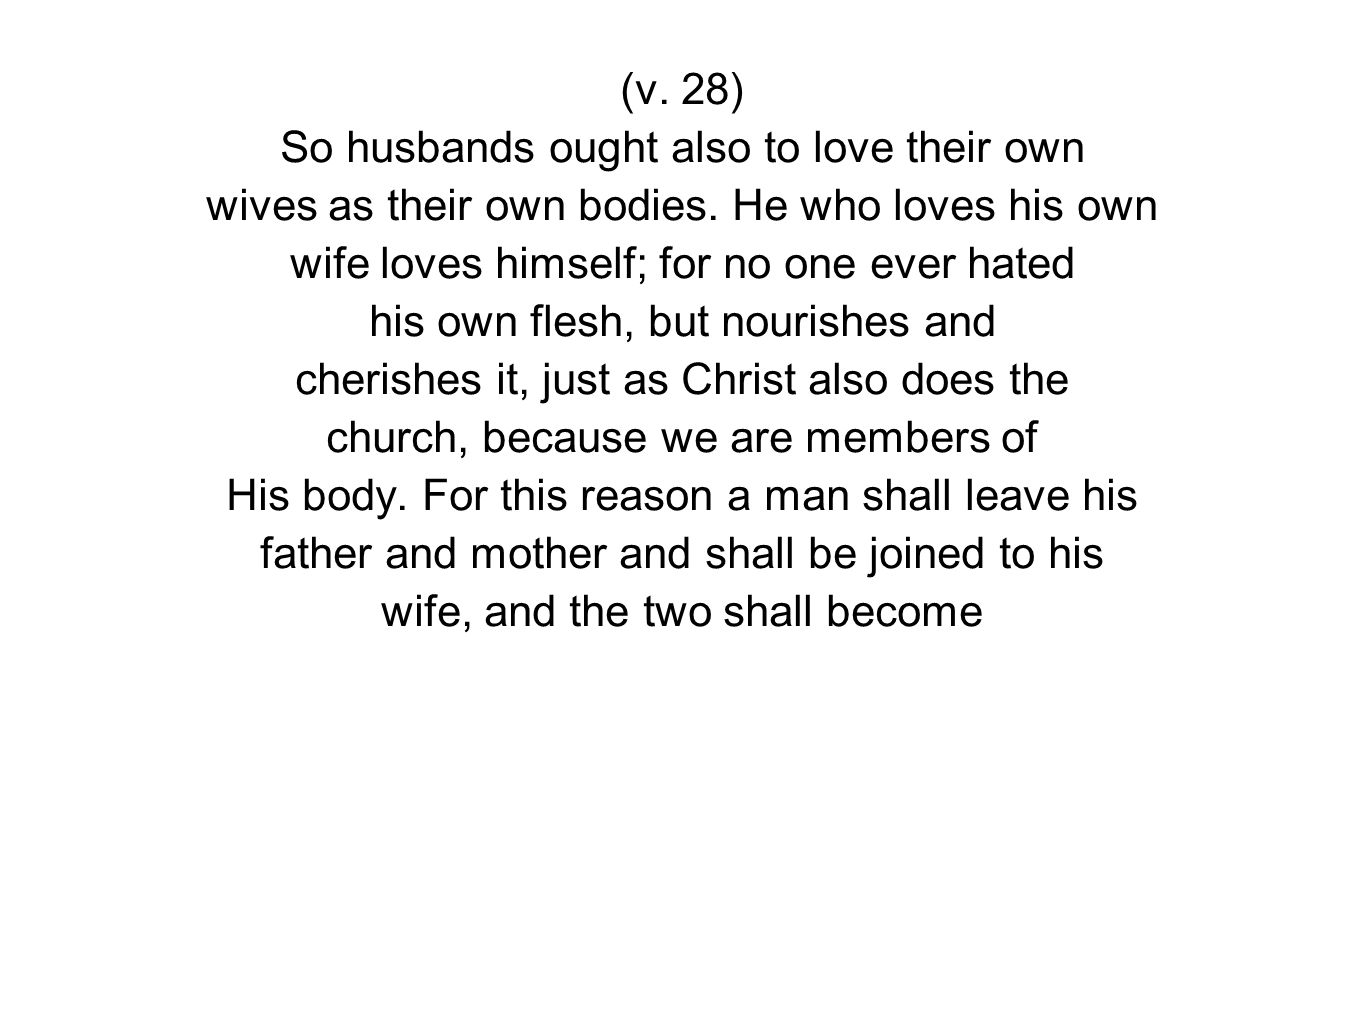 (v. 28) So husbands ought also to love their own wives as their own bodies.